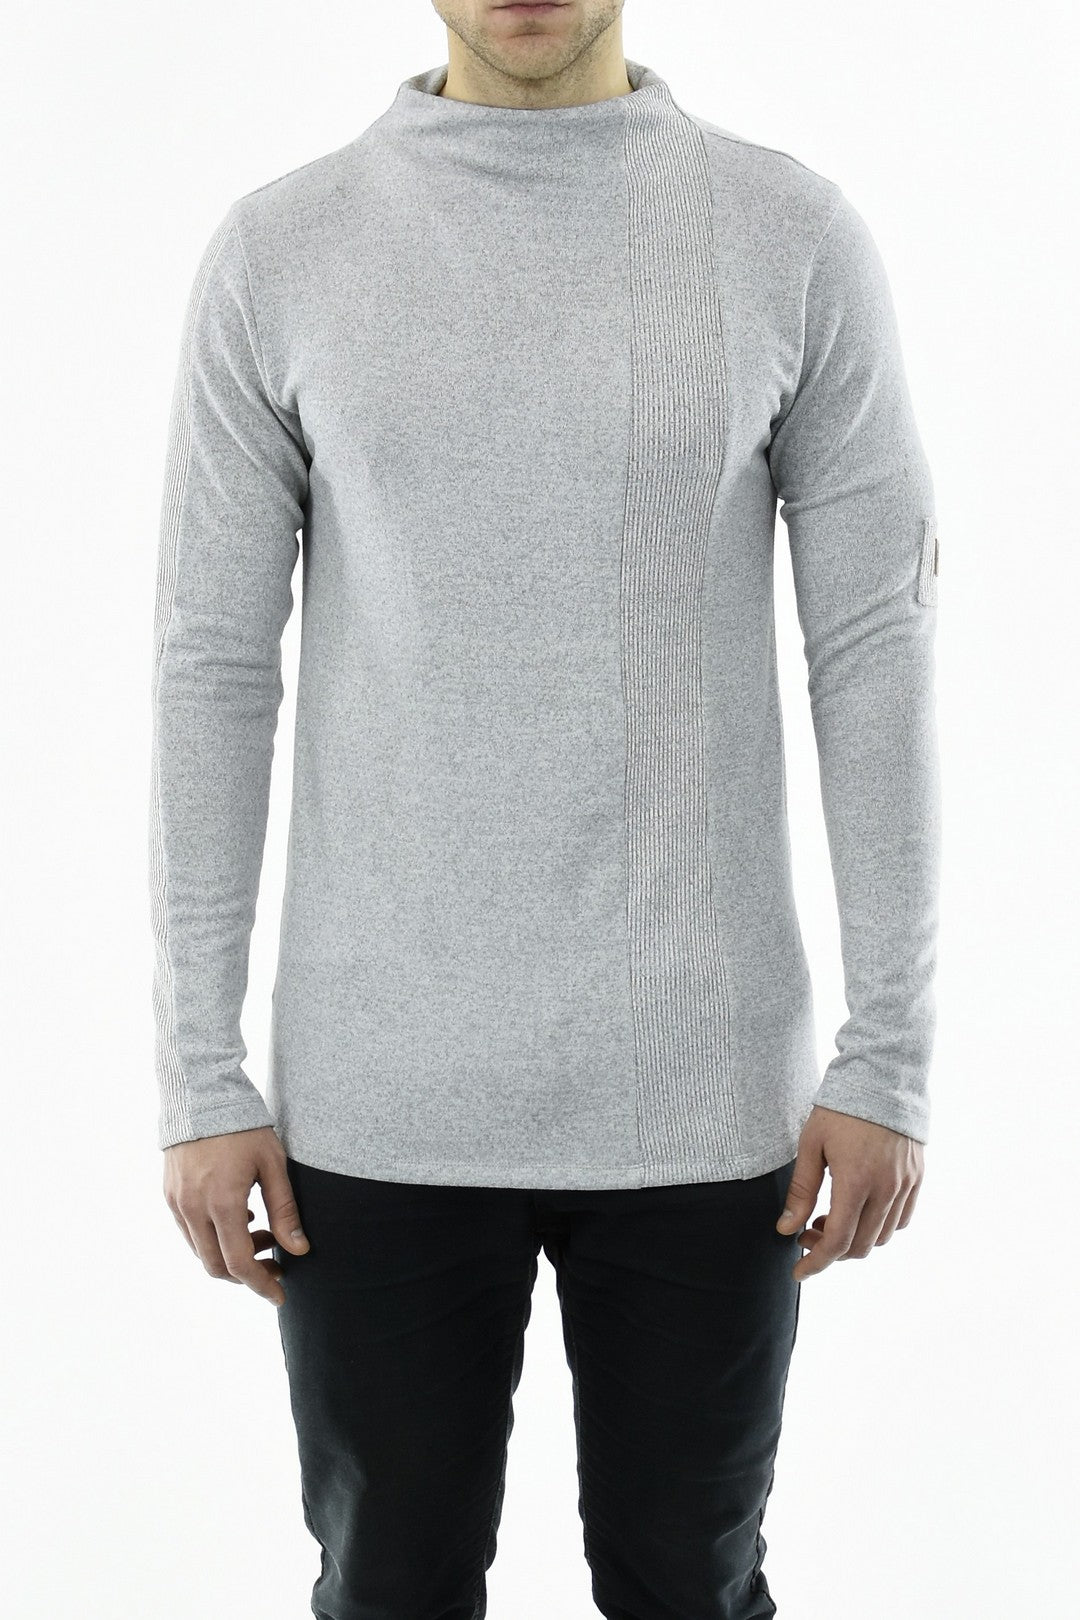 Mens Grey Cut-and-Sew Funnel neck T ZG5220